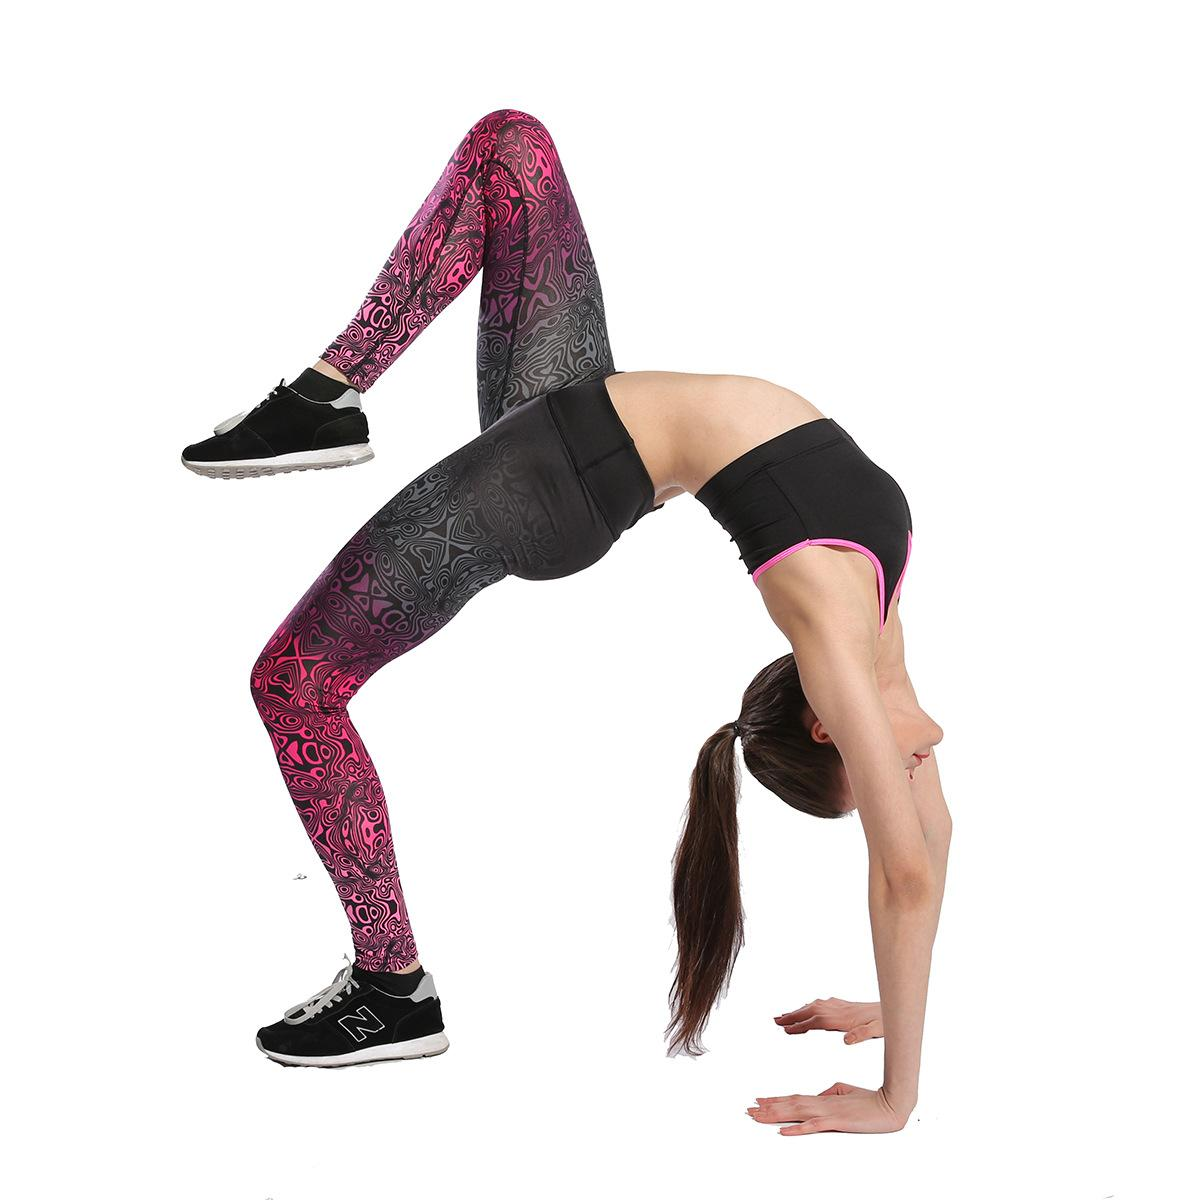 fc9dcb4fbf7c1 2019 Black And Red Gradient Yoga Workout Pants Women ' ;S Leggings Ladies  Running Pants Casual Polyester Skinny Pants From Superclotheseller, ...